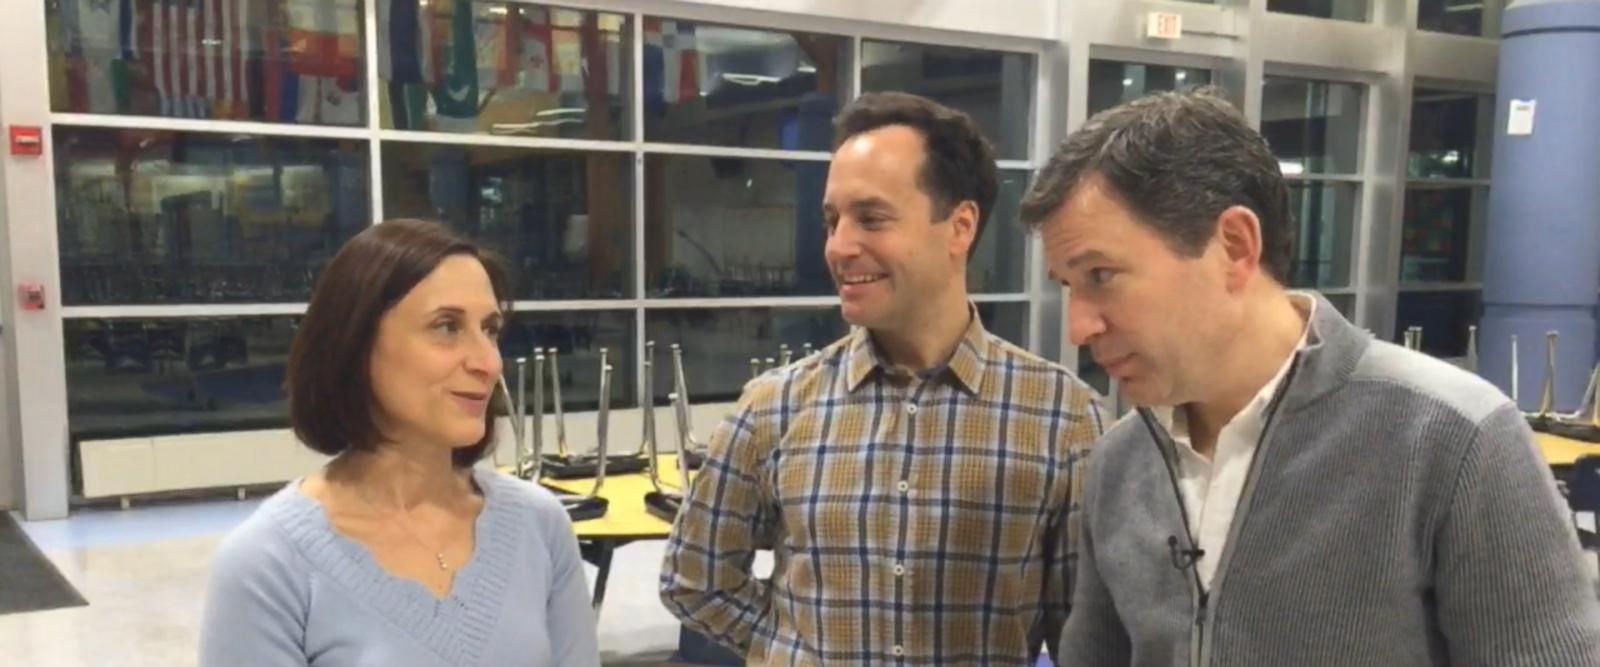 VIDEO: 10% Happier: Dan Harris Visits His Old High School